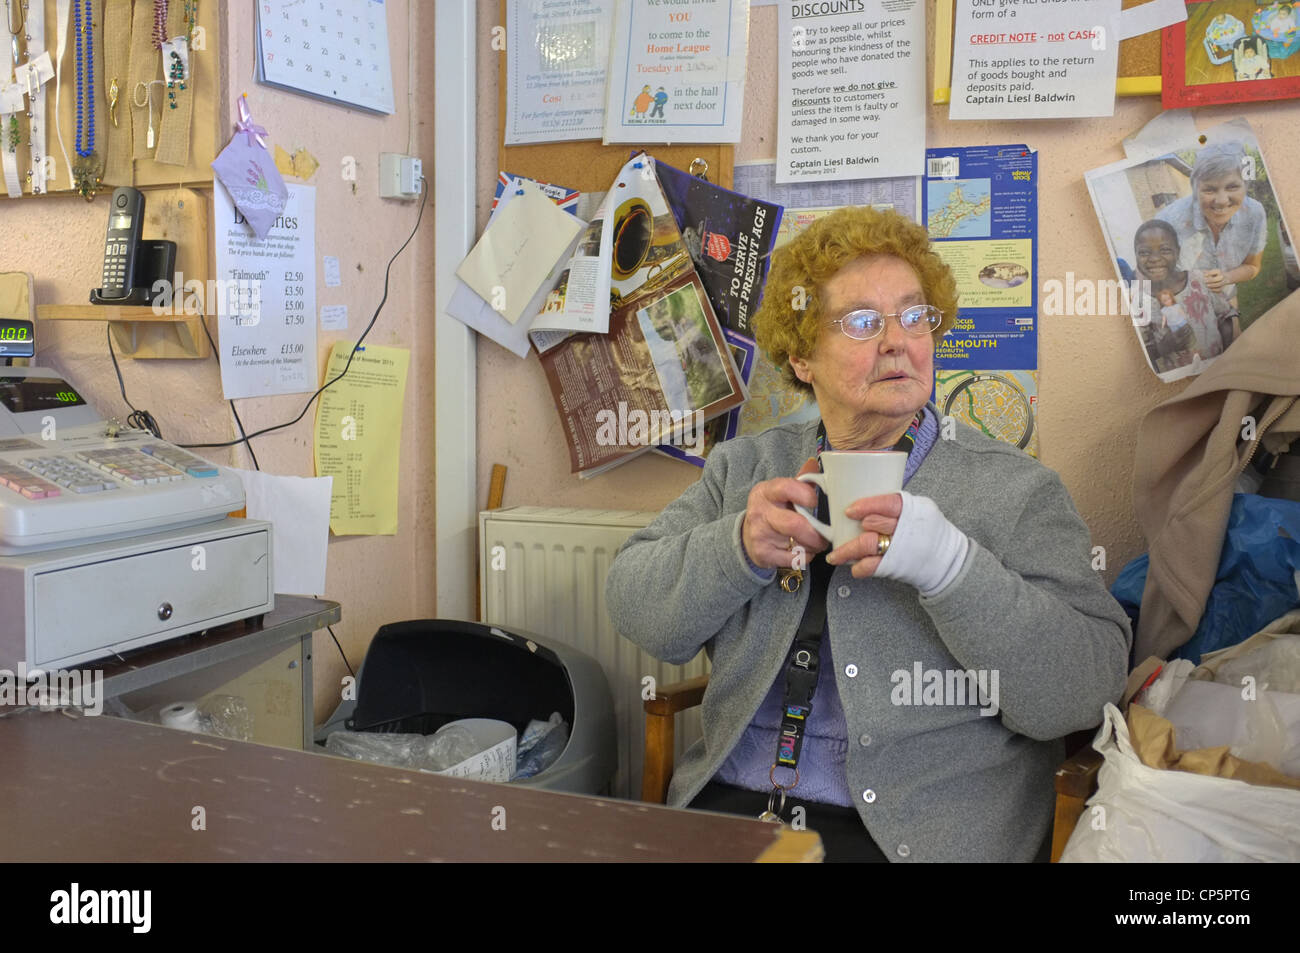 A helper in the Salvation Army charity shop in Falmouth, Cornwall - Stock Image